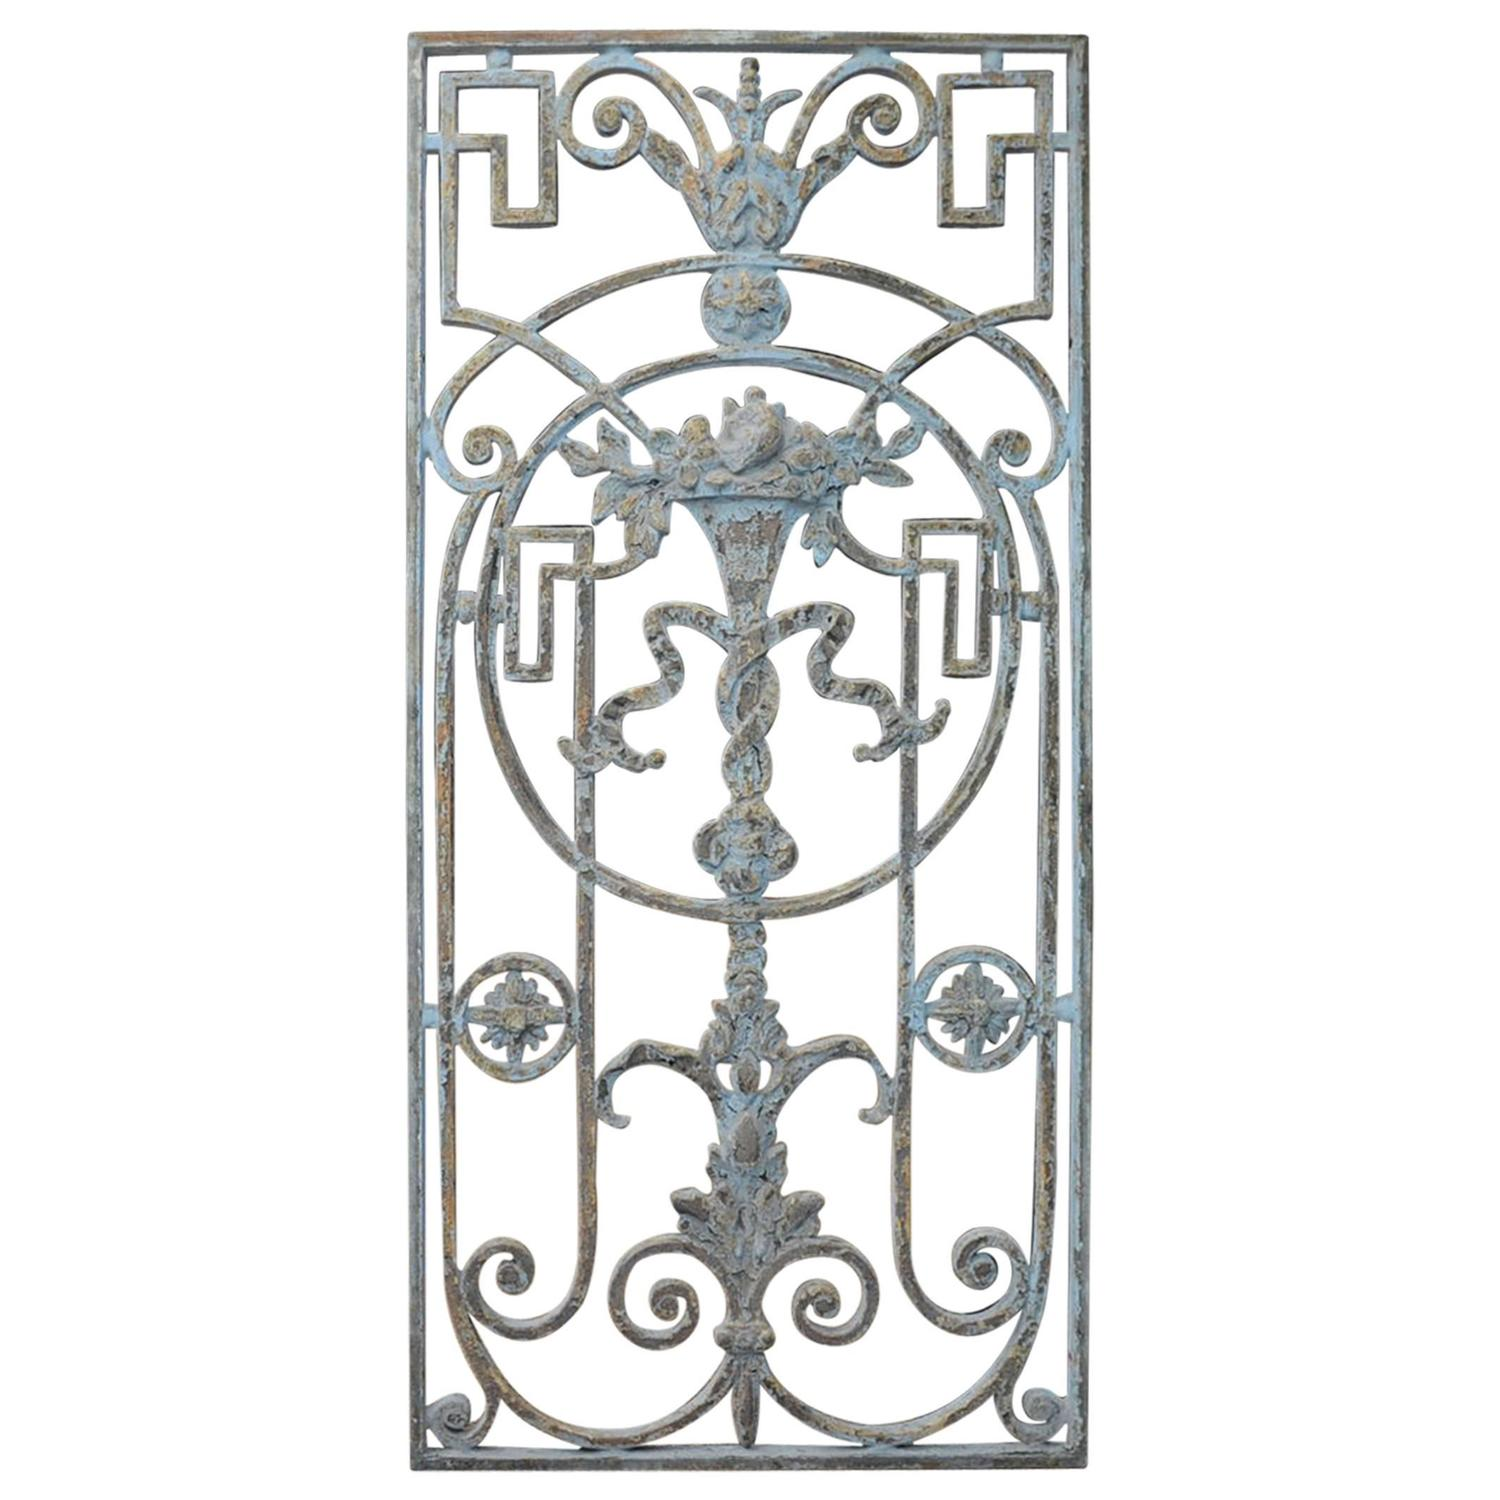 Crystal door knobs on french doors - 1900 French Entrance Doors Cast Iron Flower Gate Original Grey Patina